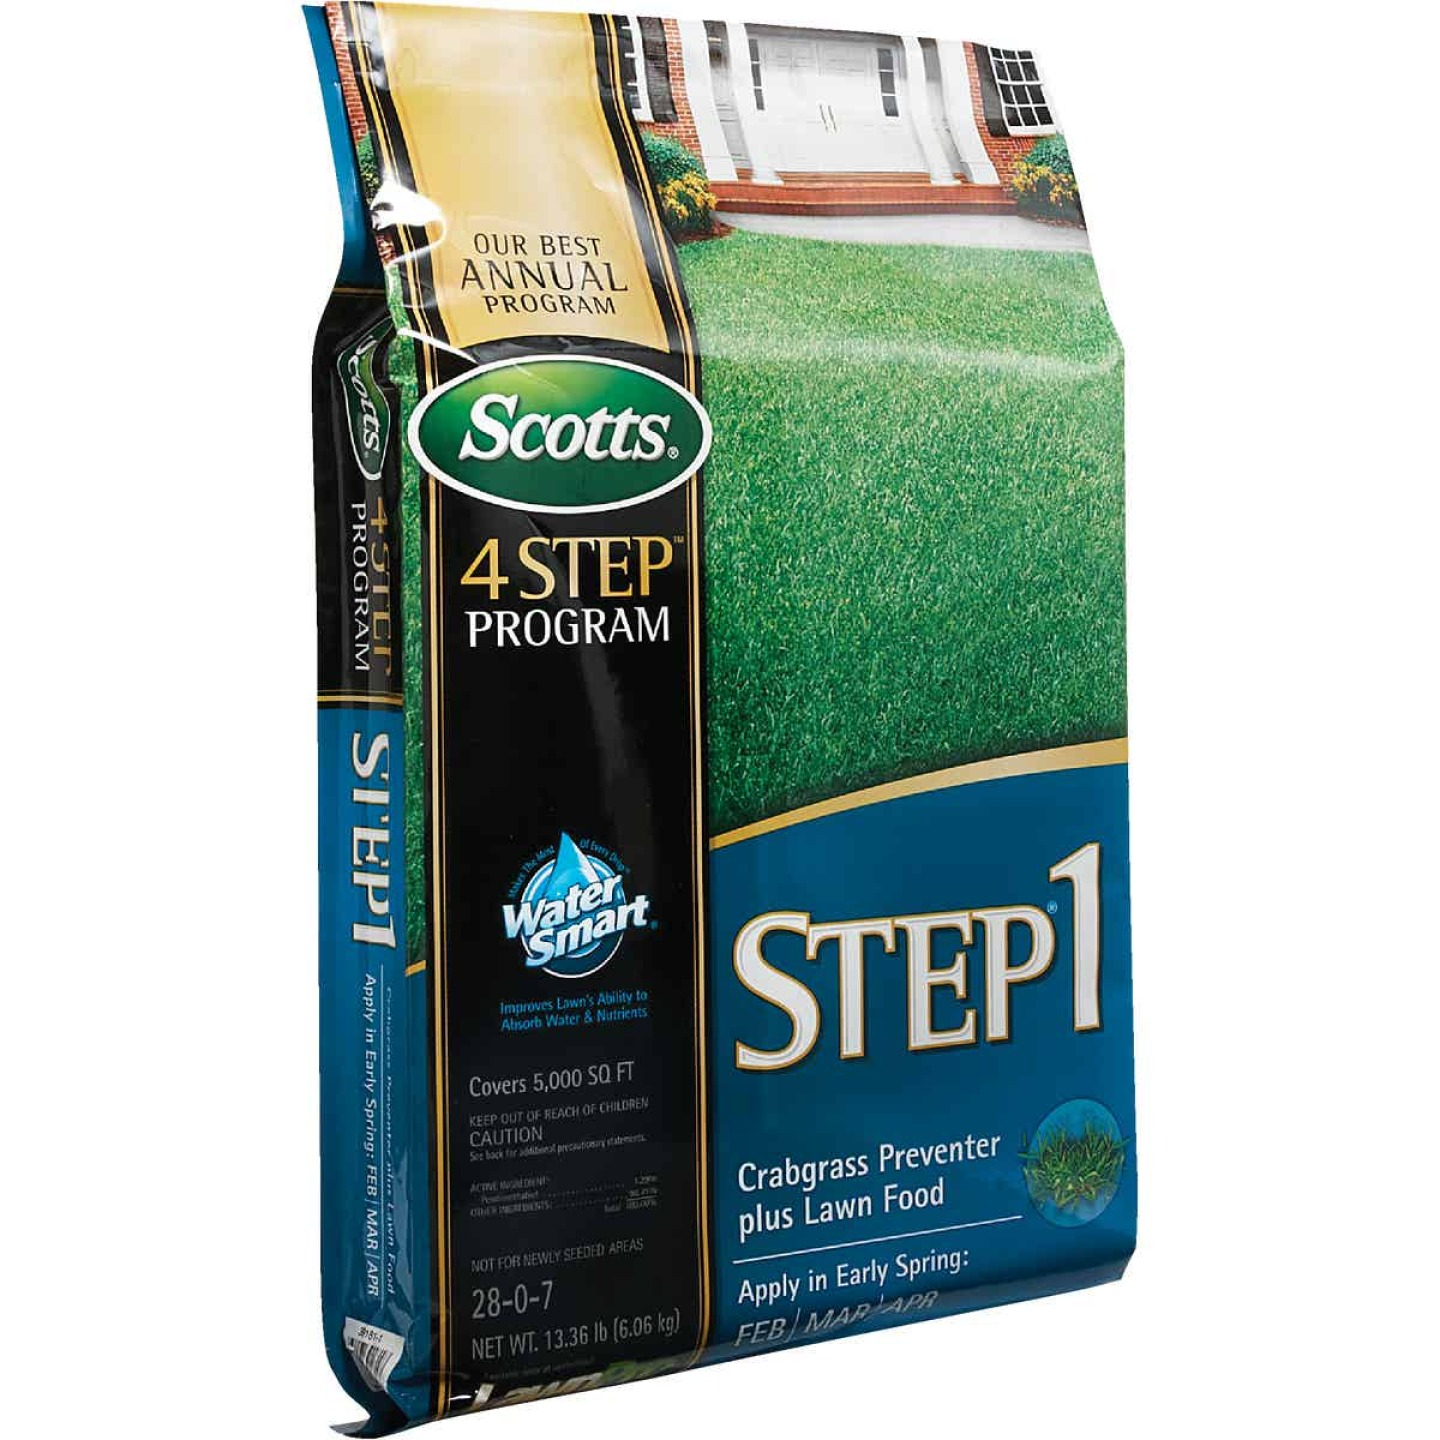 Scotts 4-Step Program Step 1 13.46 Lb. 5000 Sq. Ft. 28-0-7 Lawn Fertilizer with Crabgrass Preventer Image 8